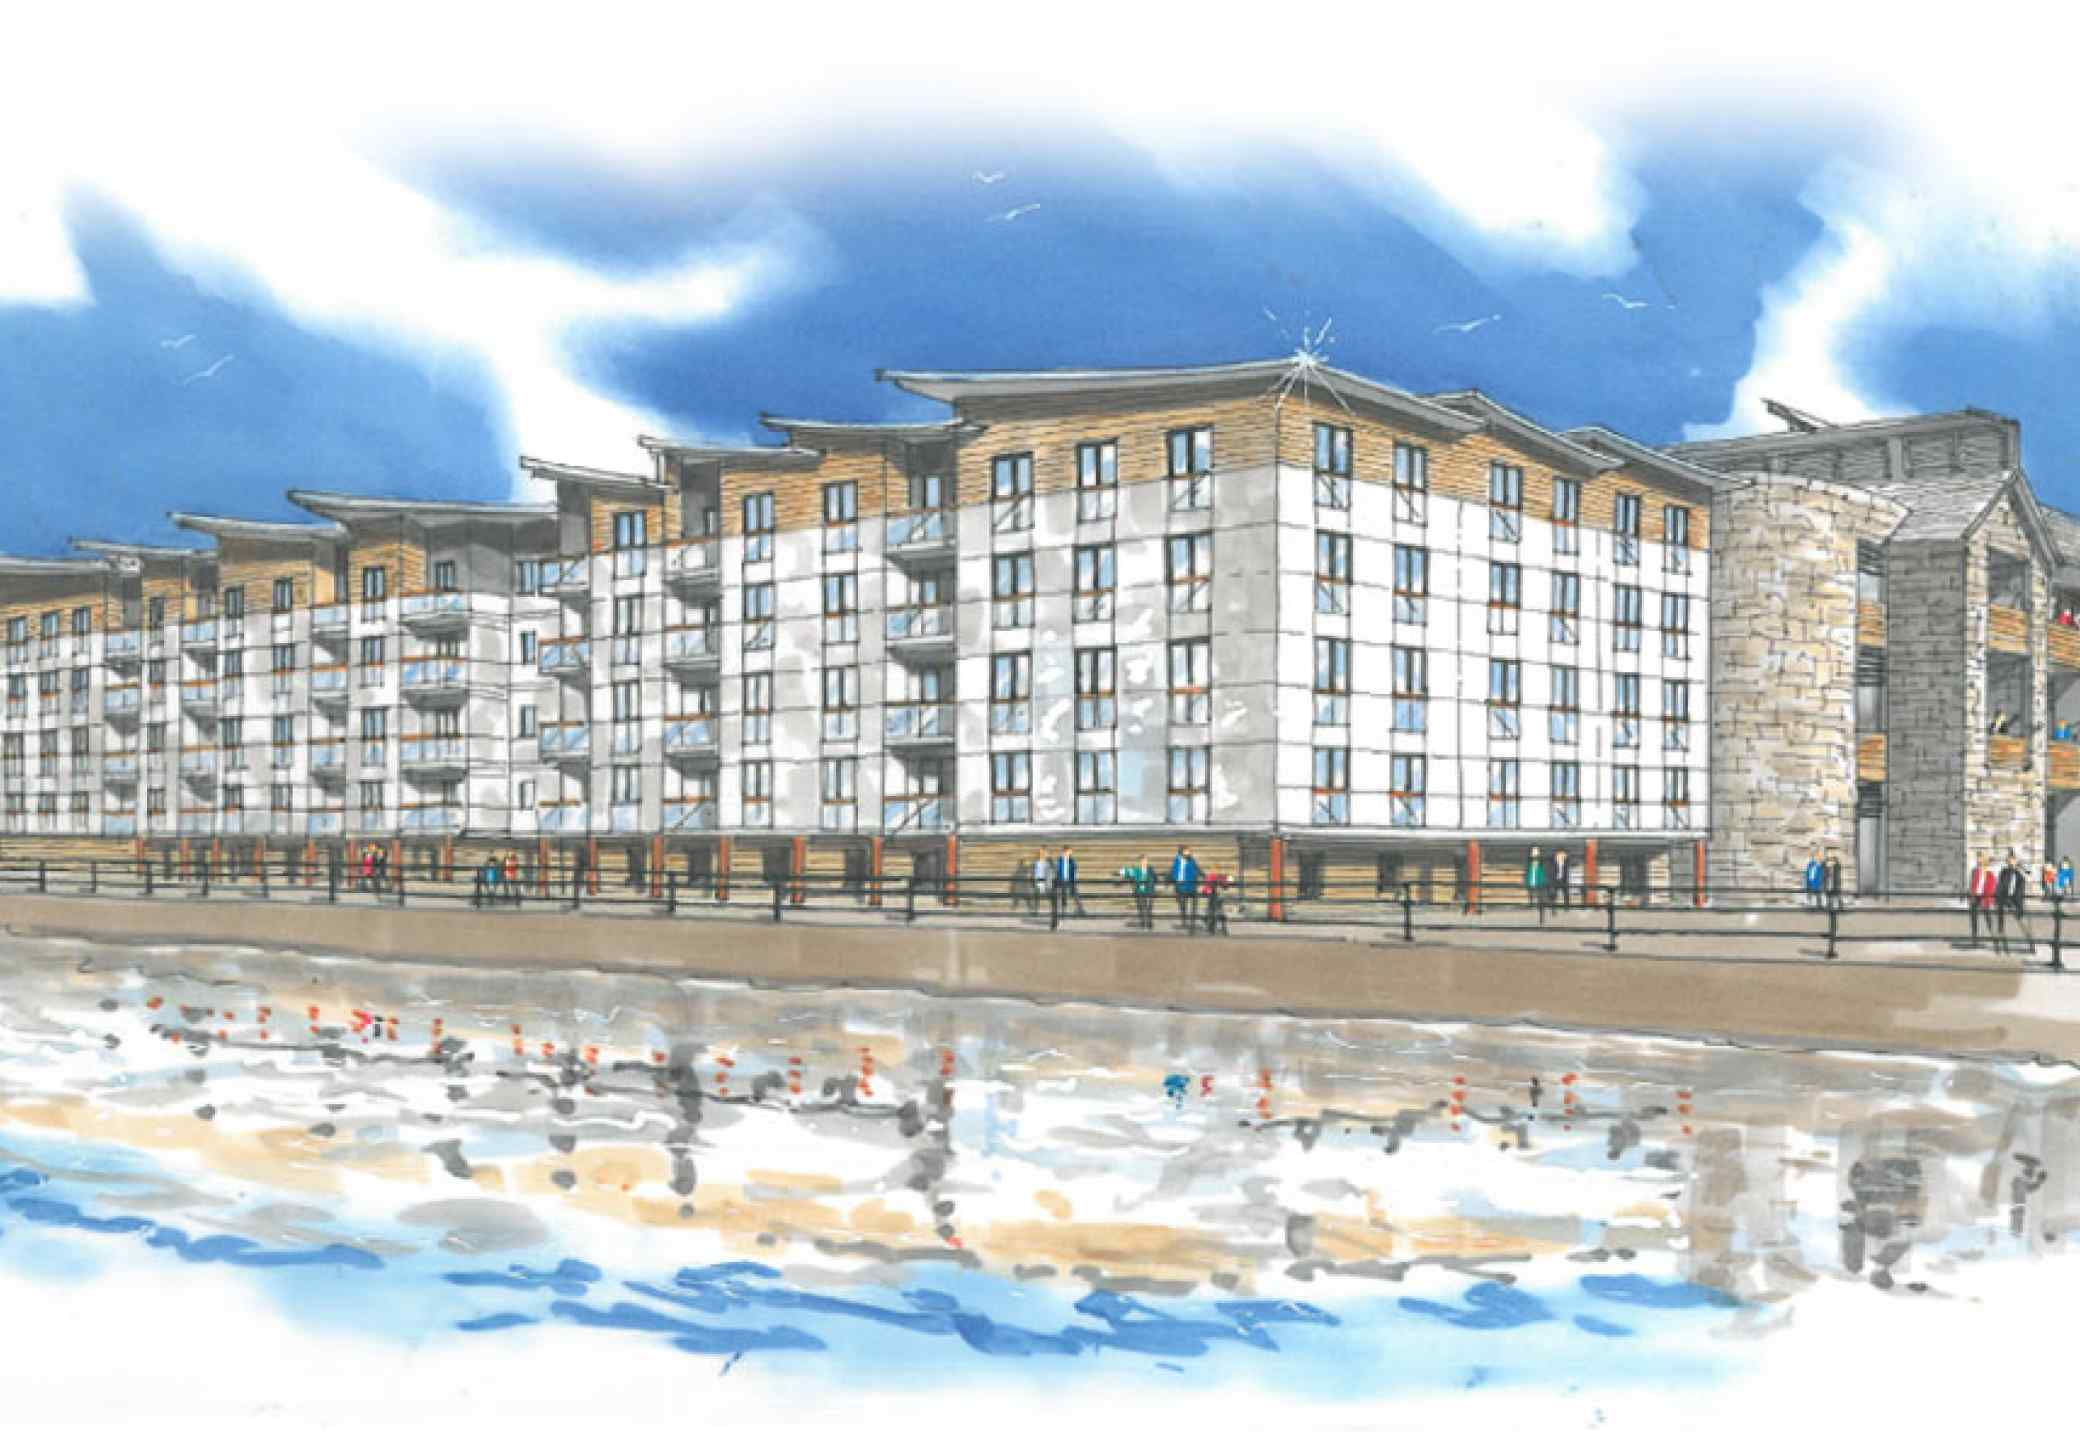 Victoria Dock Caernarfon architectural illustration